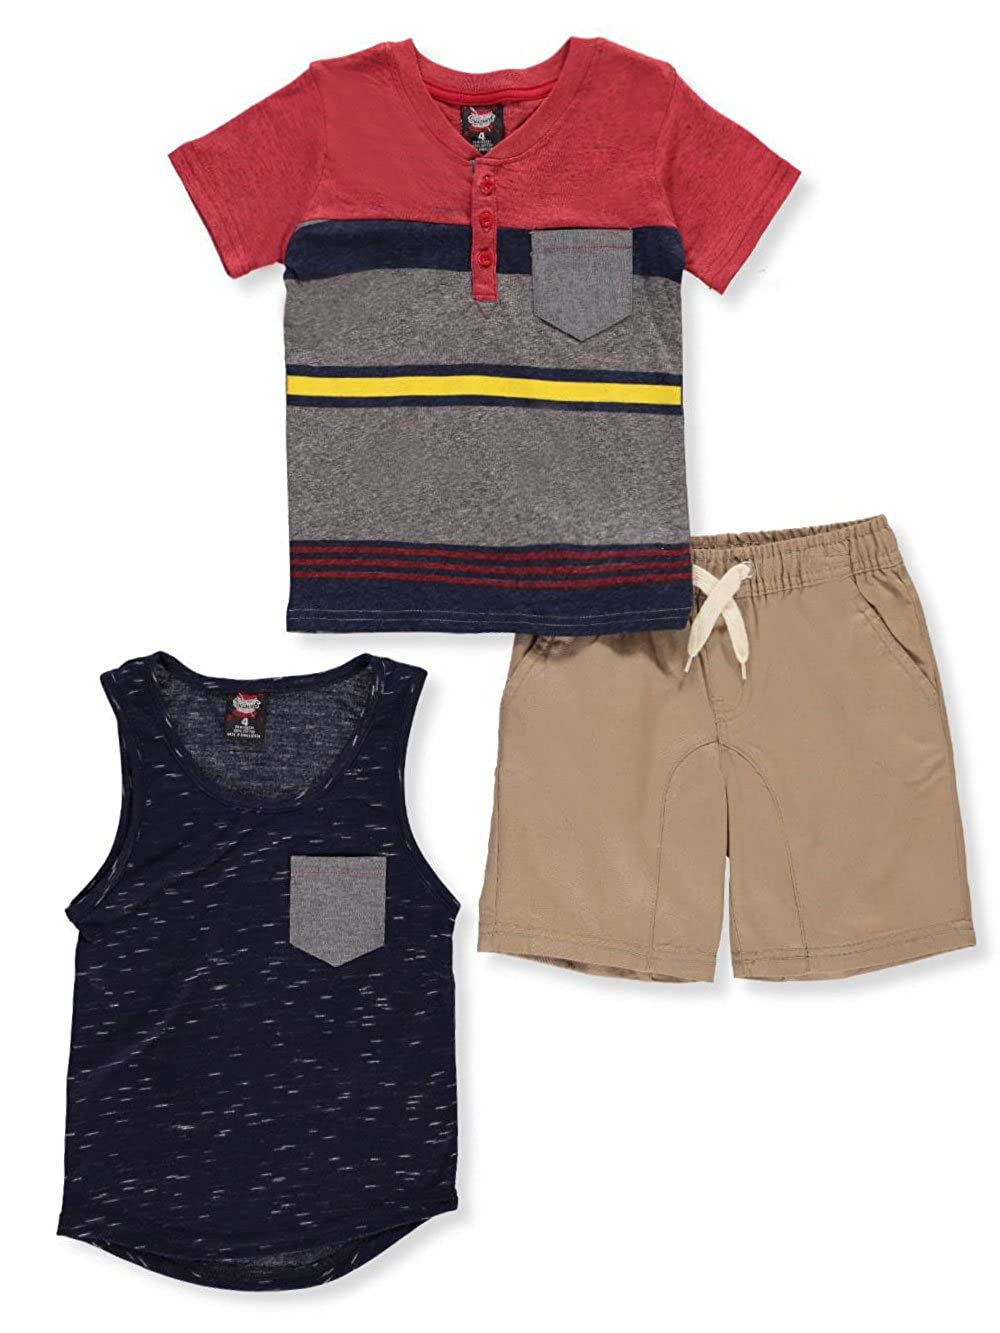 Retro Stitch Boys' 3-Piece Set 4